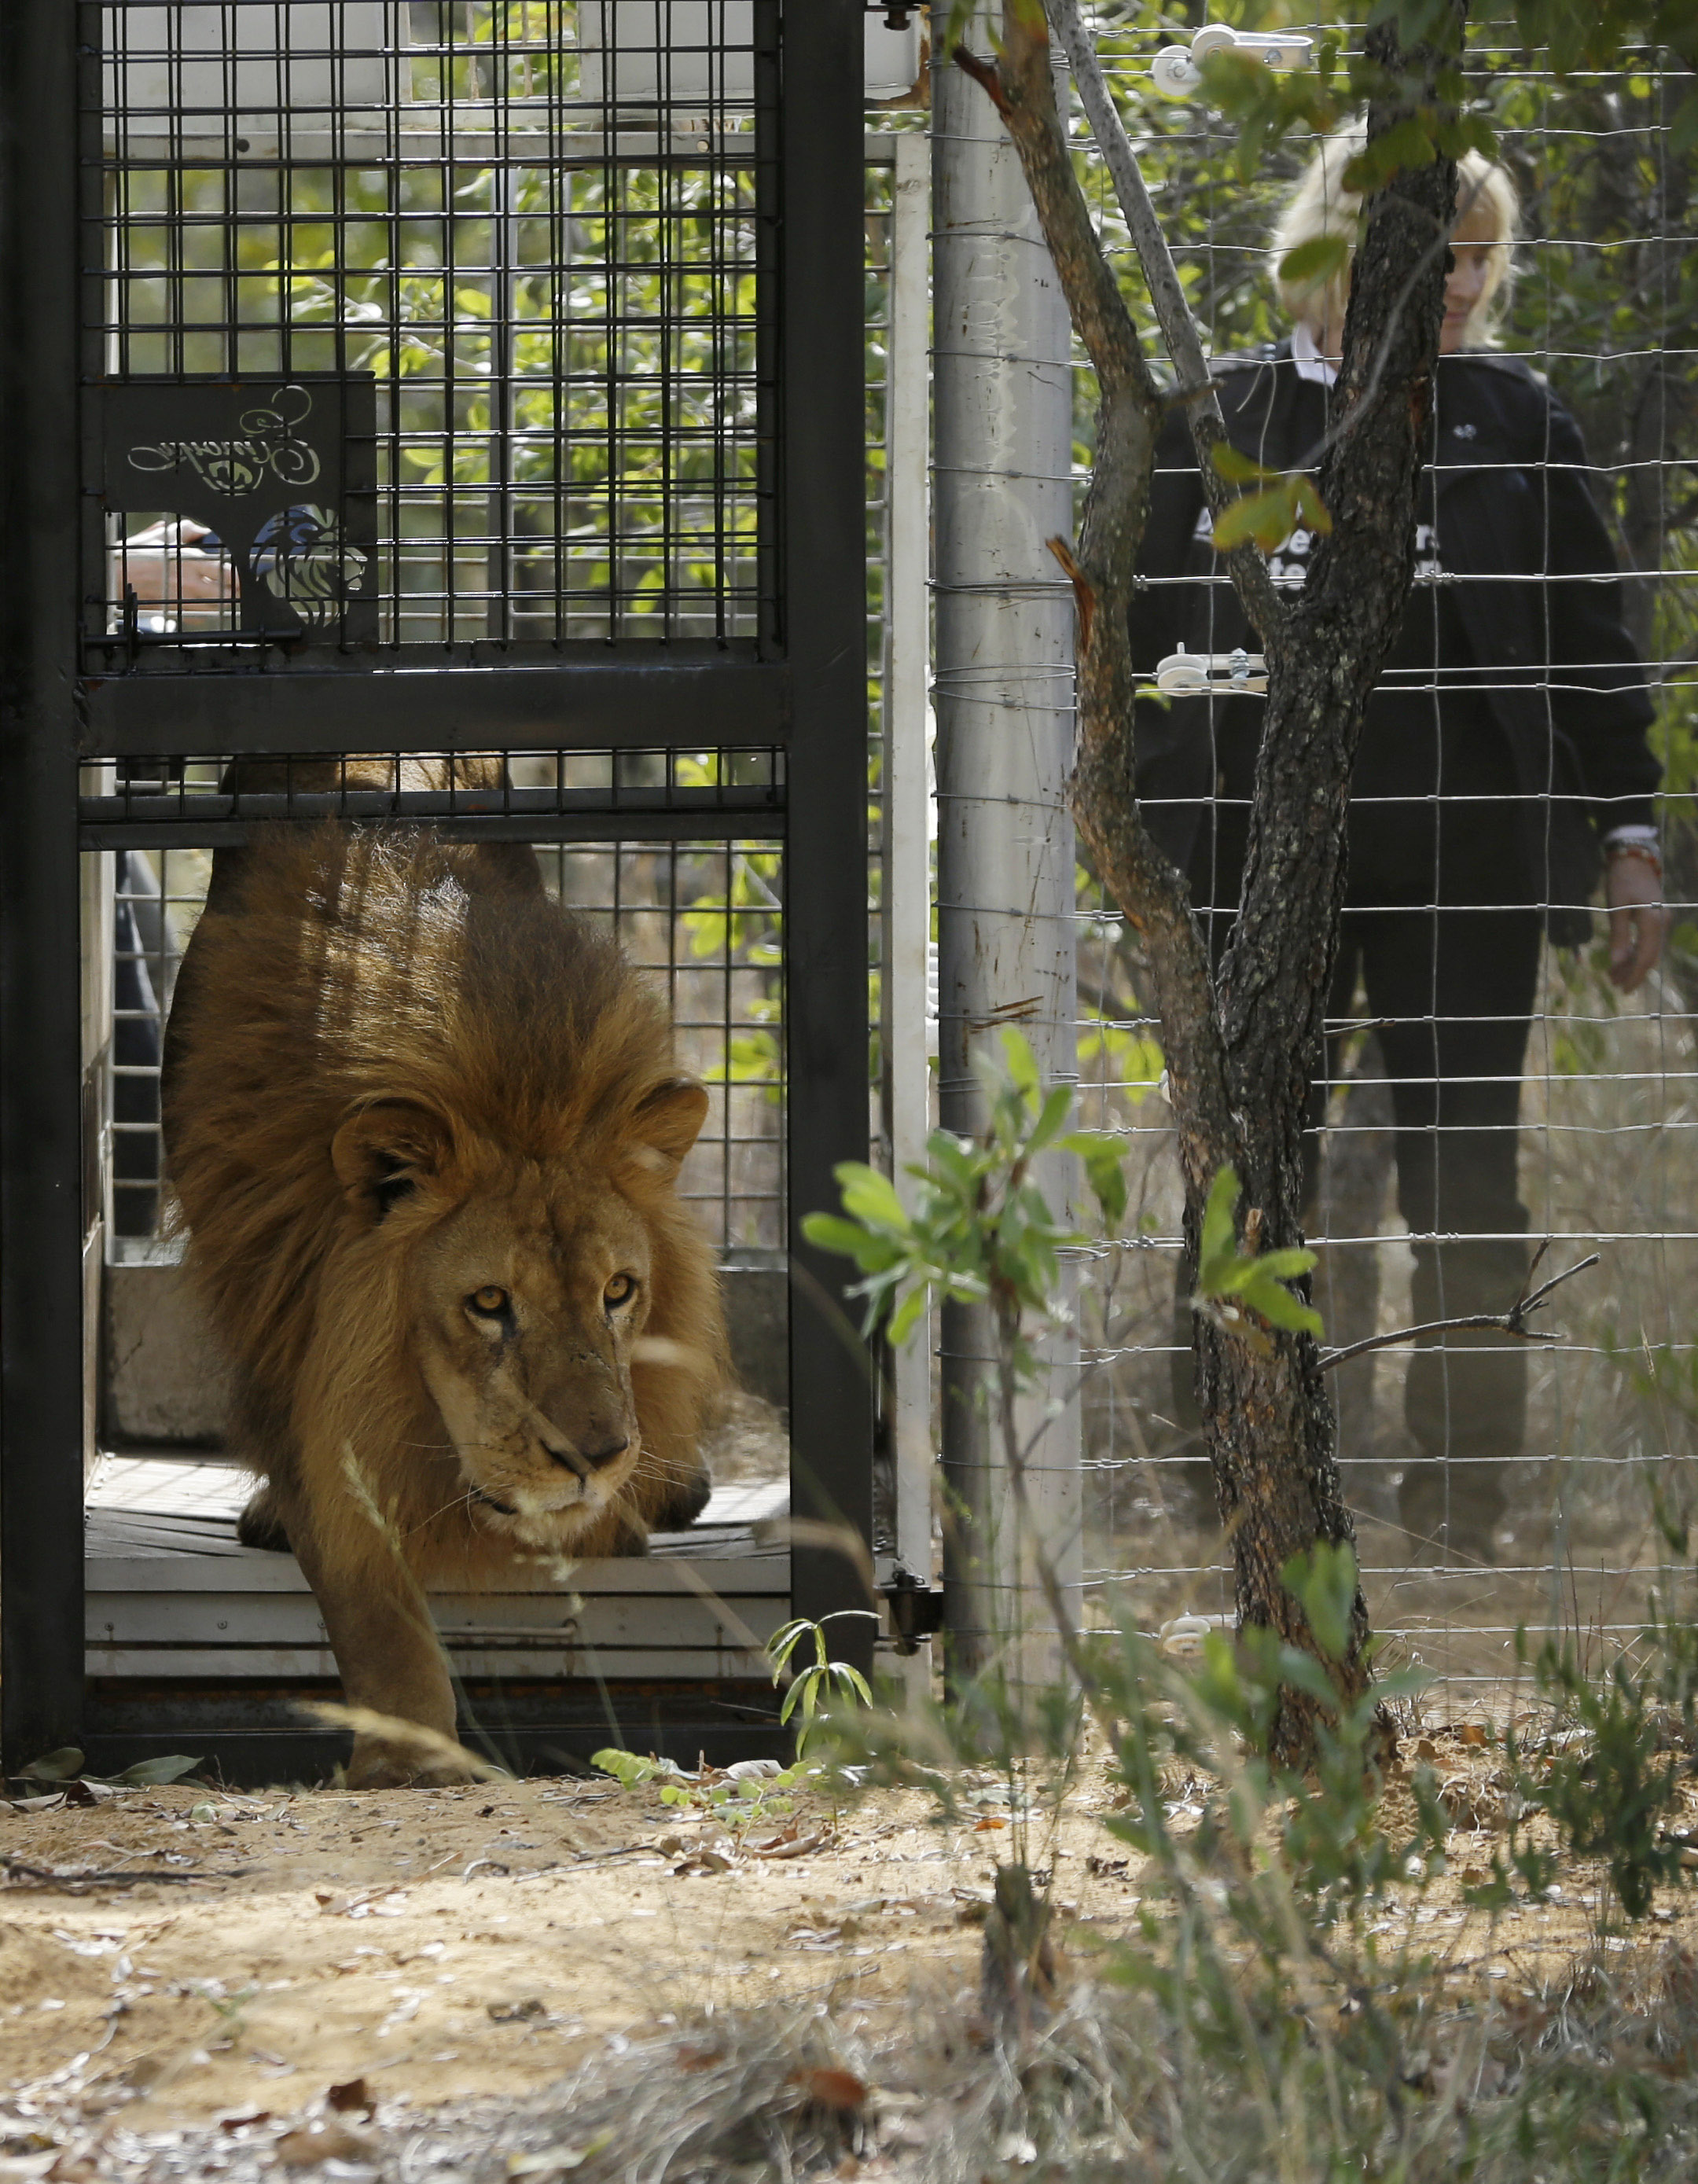 PHOTOS: 33 Rescued Circus Lions Airlifted From Peru To South Africa